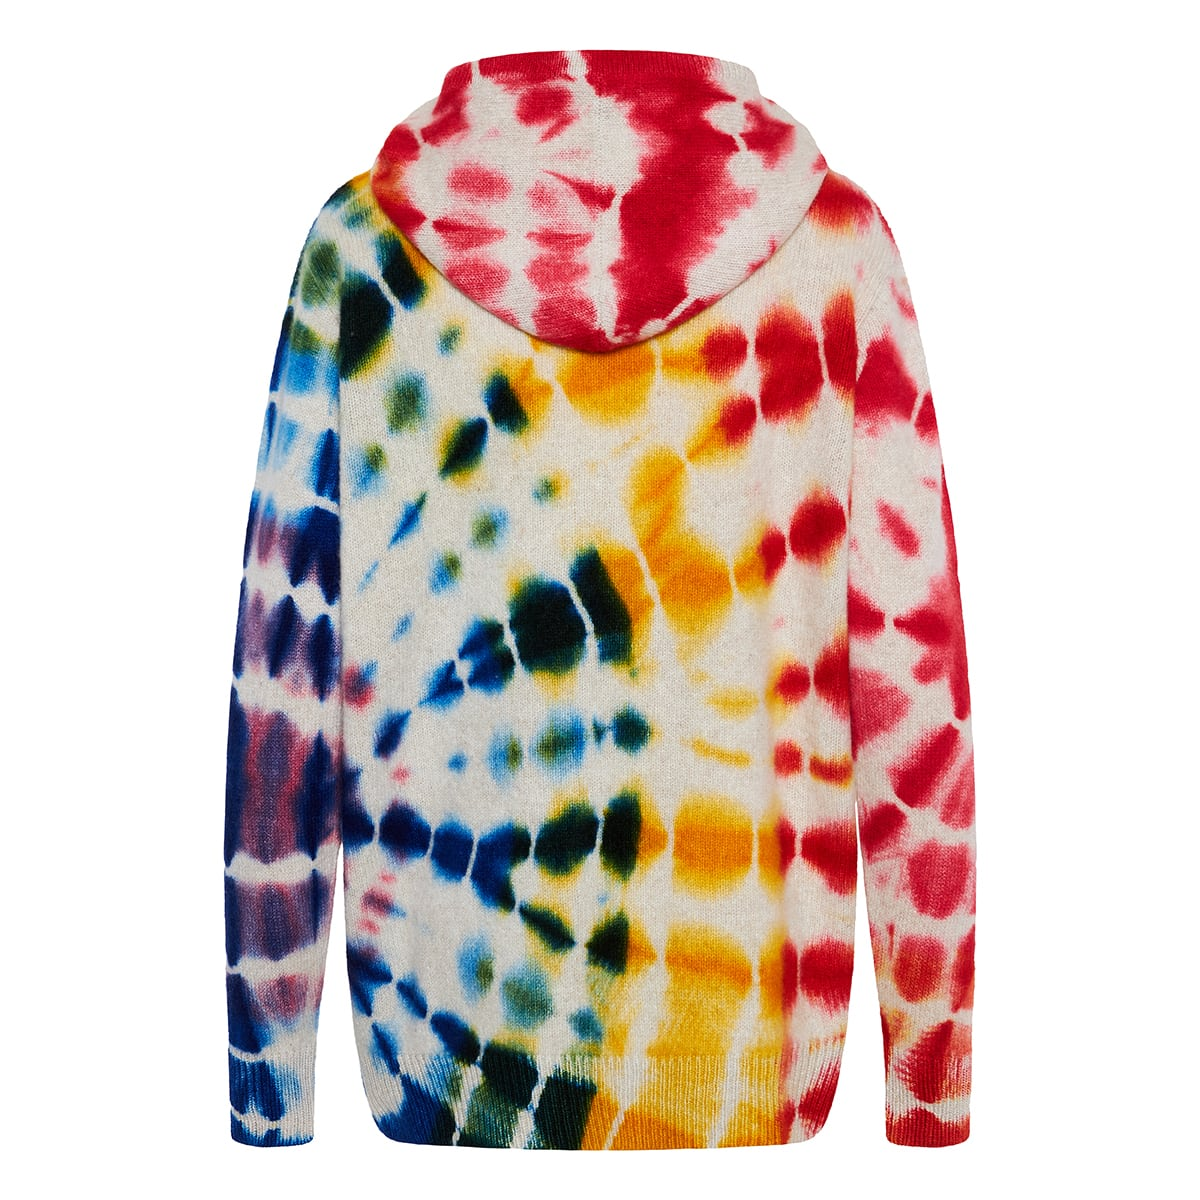 Scope tie-dye cashmere zip hoodie